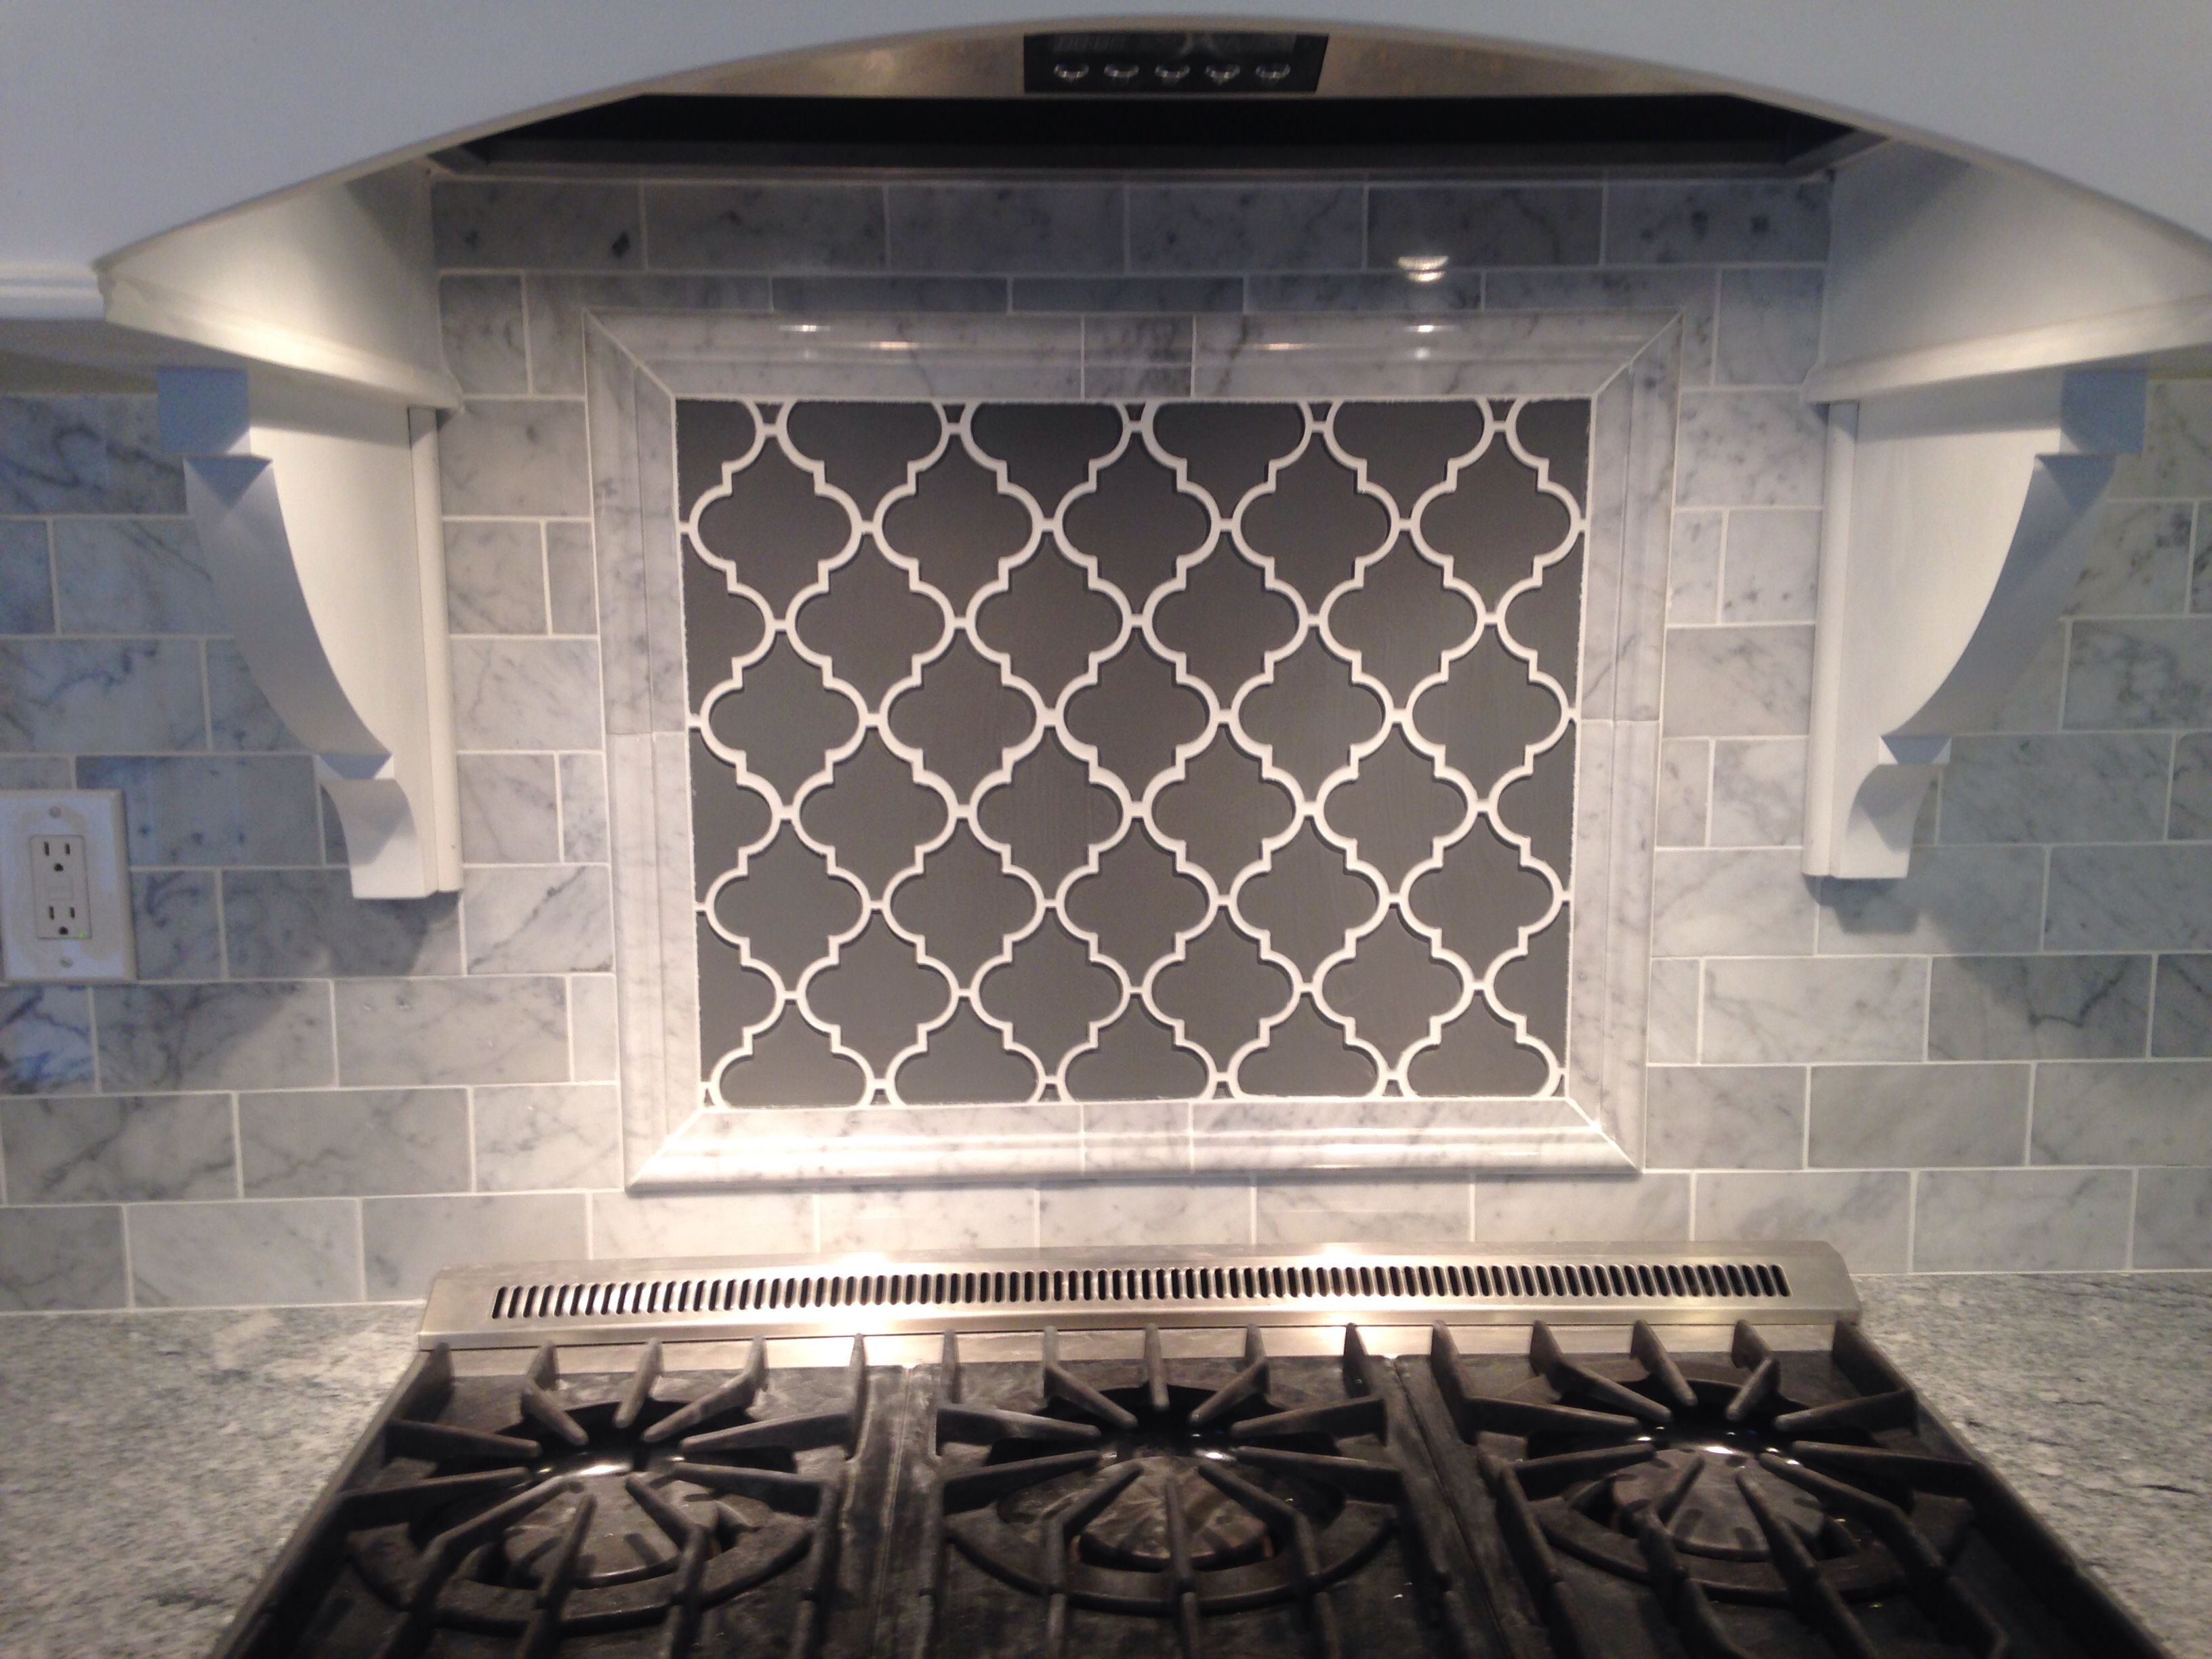 Grey Moroccan Lattice Backsplash Accent Behind Range. Carrera Bianco Subway  Tile, Viscount White Granite.